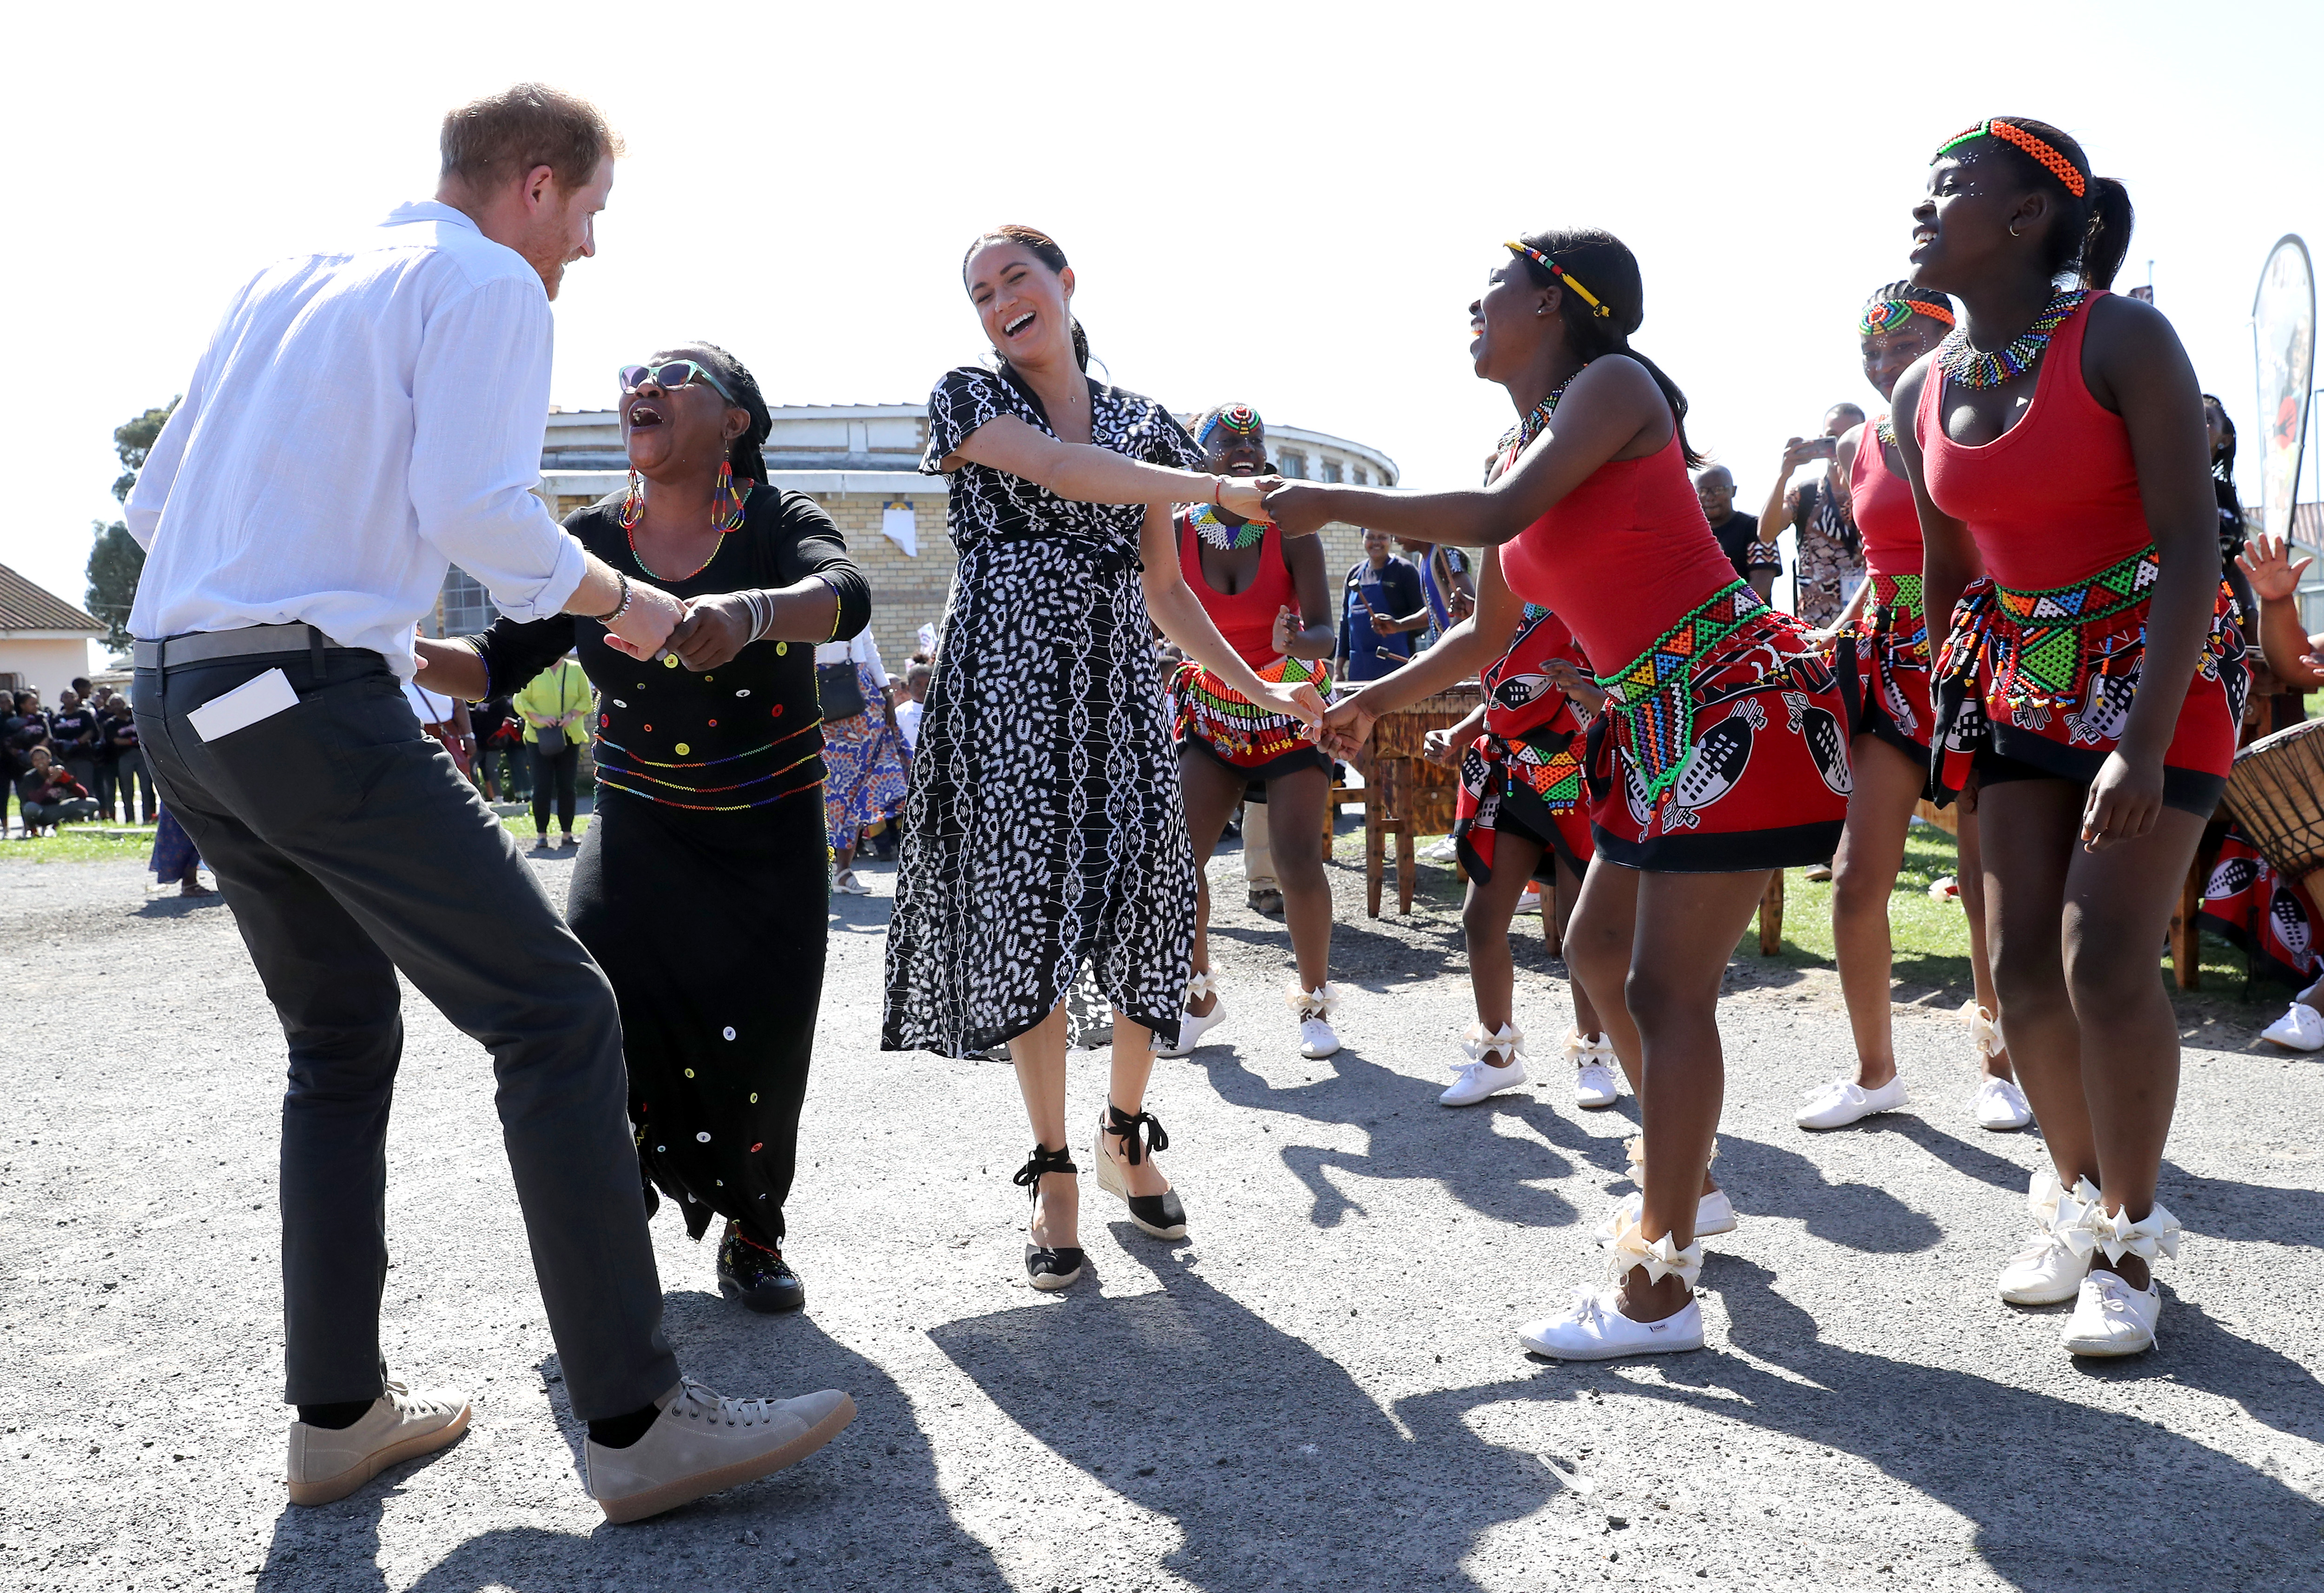 Prince Harry, Duke of Sussex and Meghan, Duchess of Sussex dance with a group of performers at their first engagement in South Africa after touching down in Cape Town on Monday.